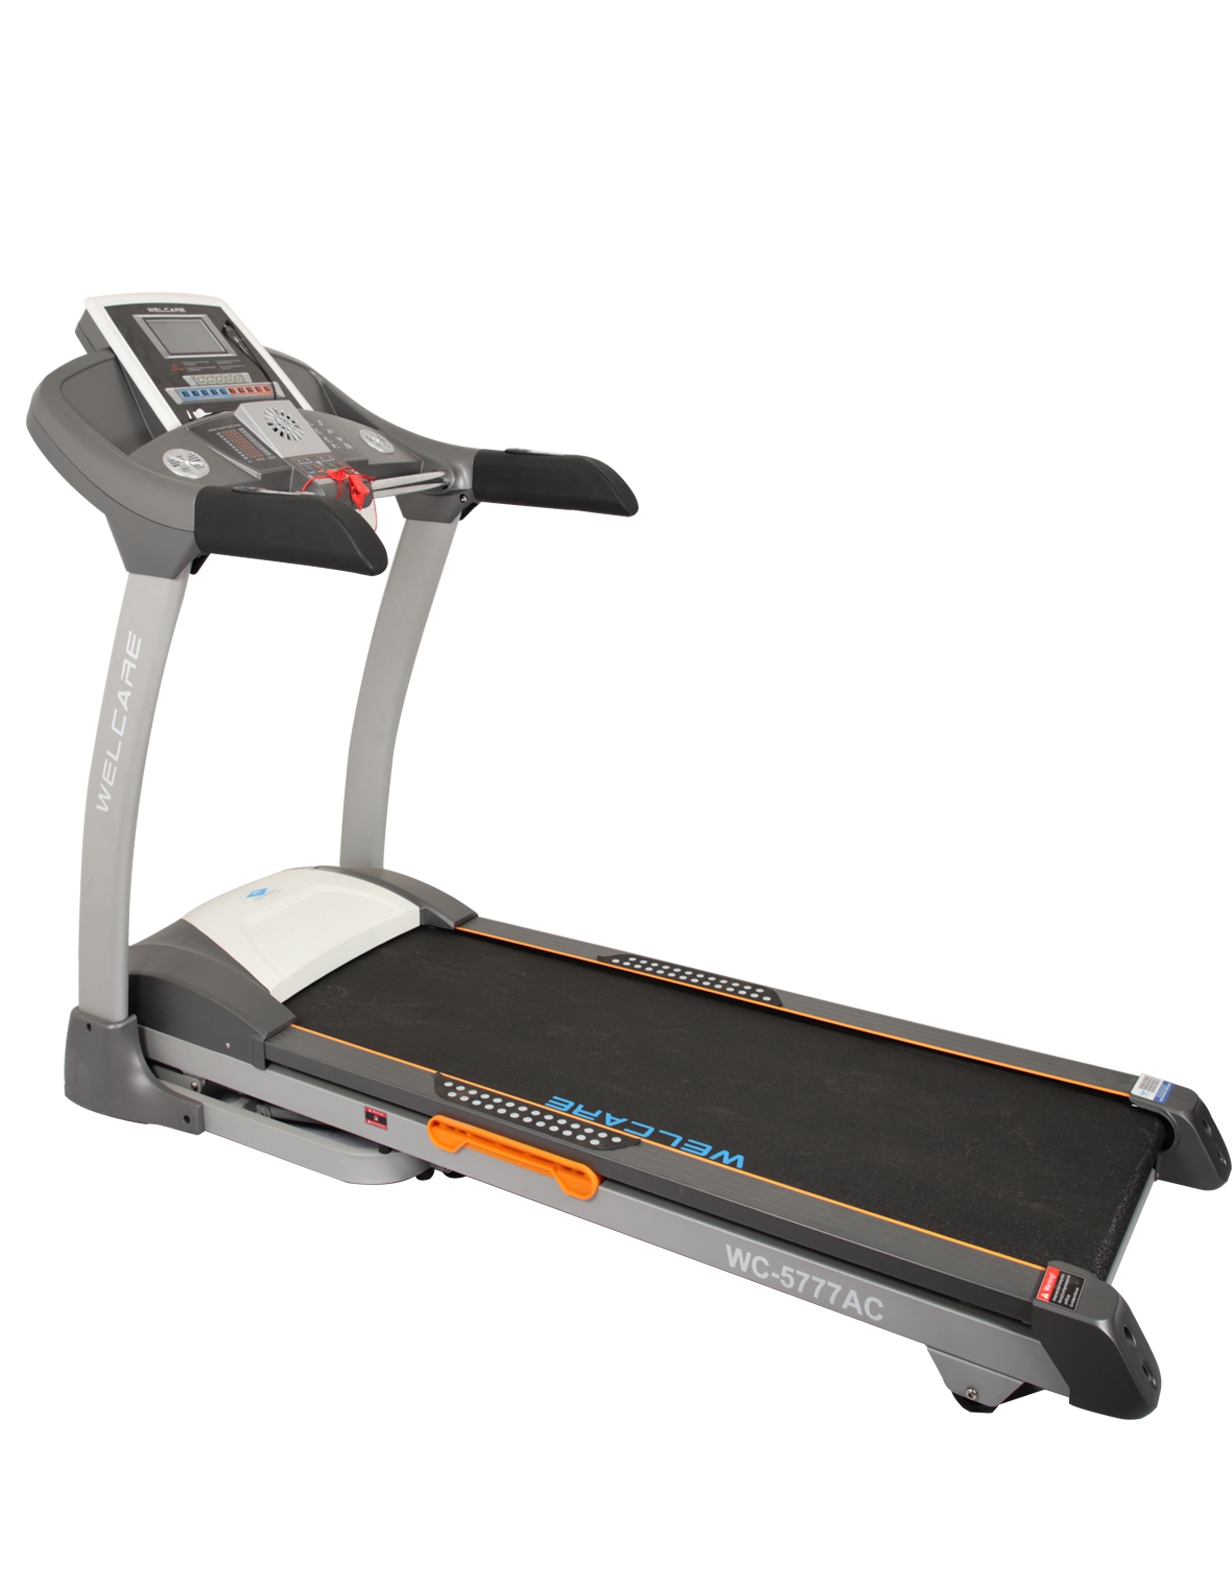 WC 5777 AC MOTORIZED TREADMILL